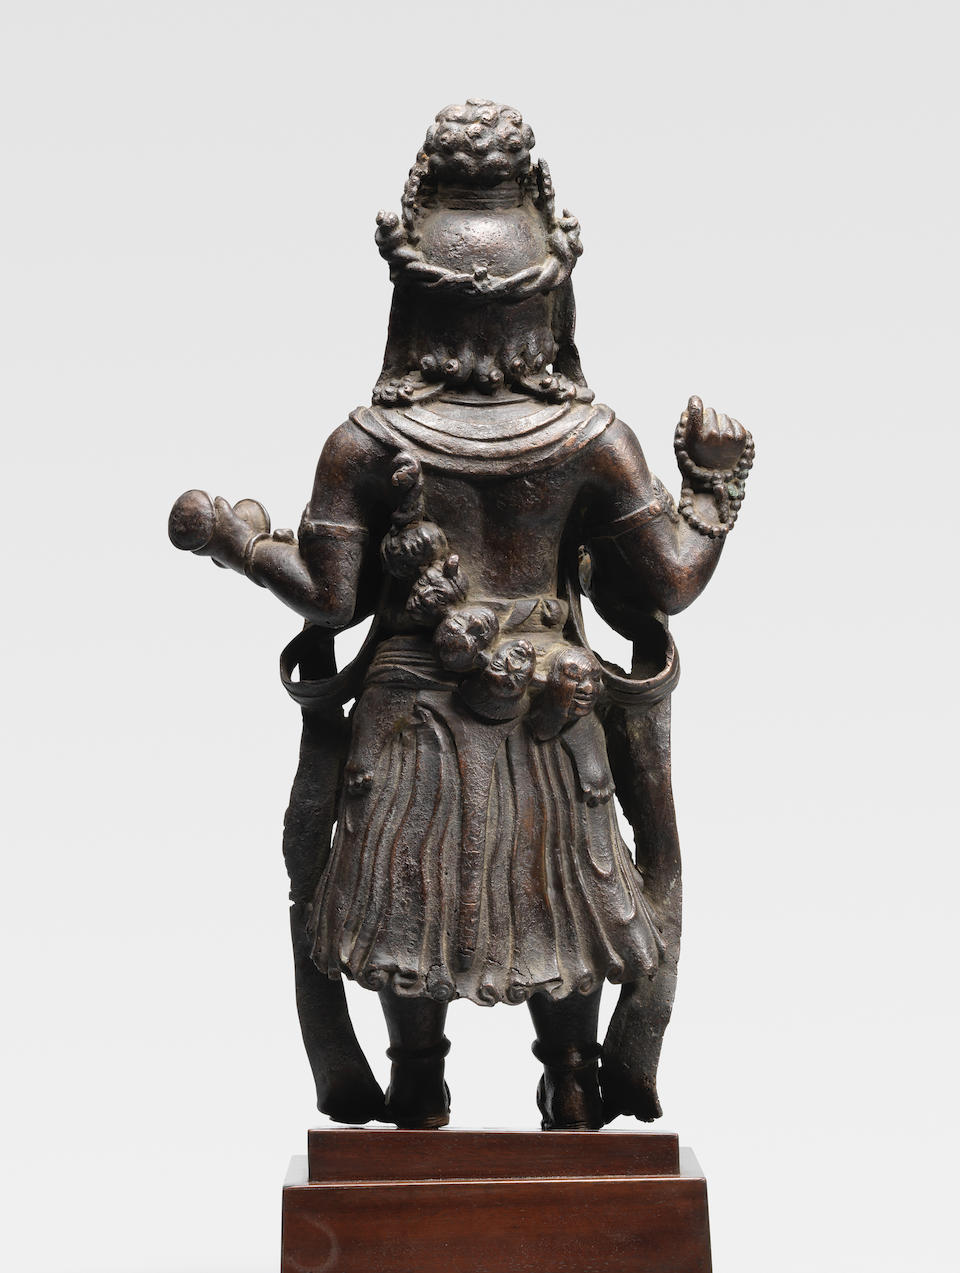 A COPPER ALLOY FIGURE OF MAHAKALA YUNNAN, DALI KINGDOM, LATE 12TH/EARLY 13TH CENTURY